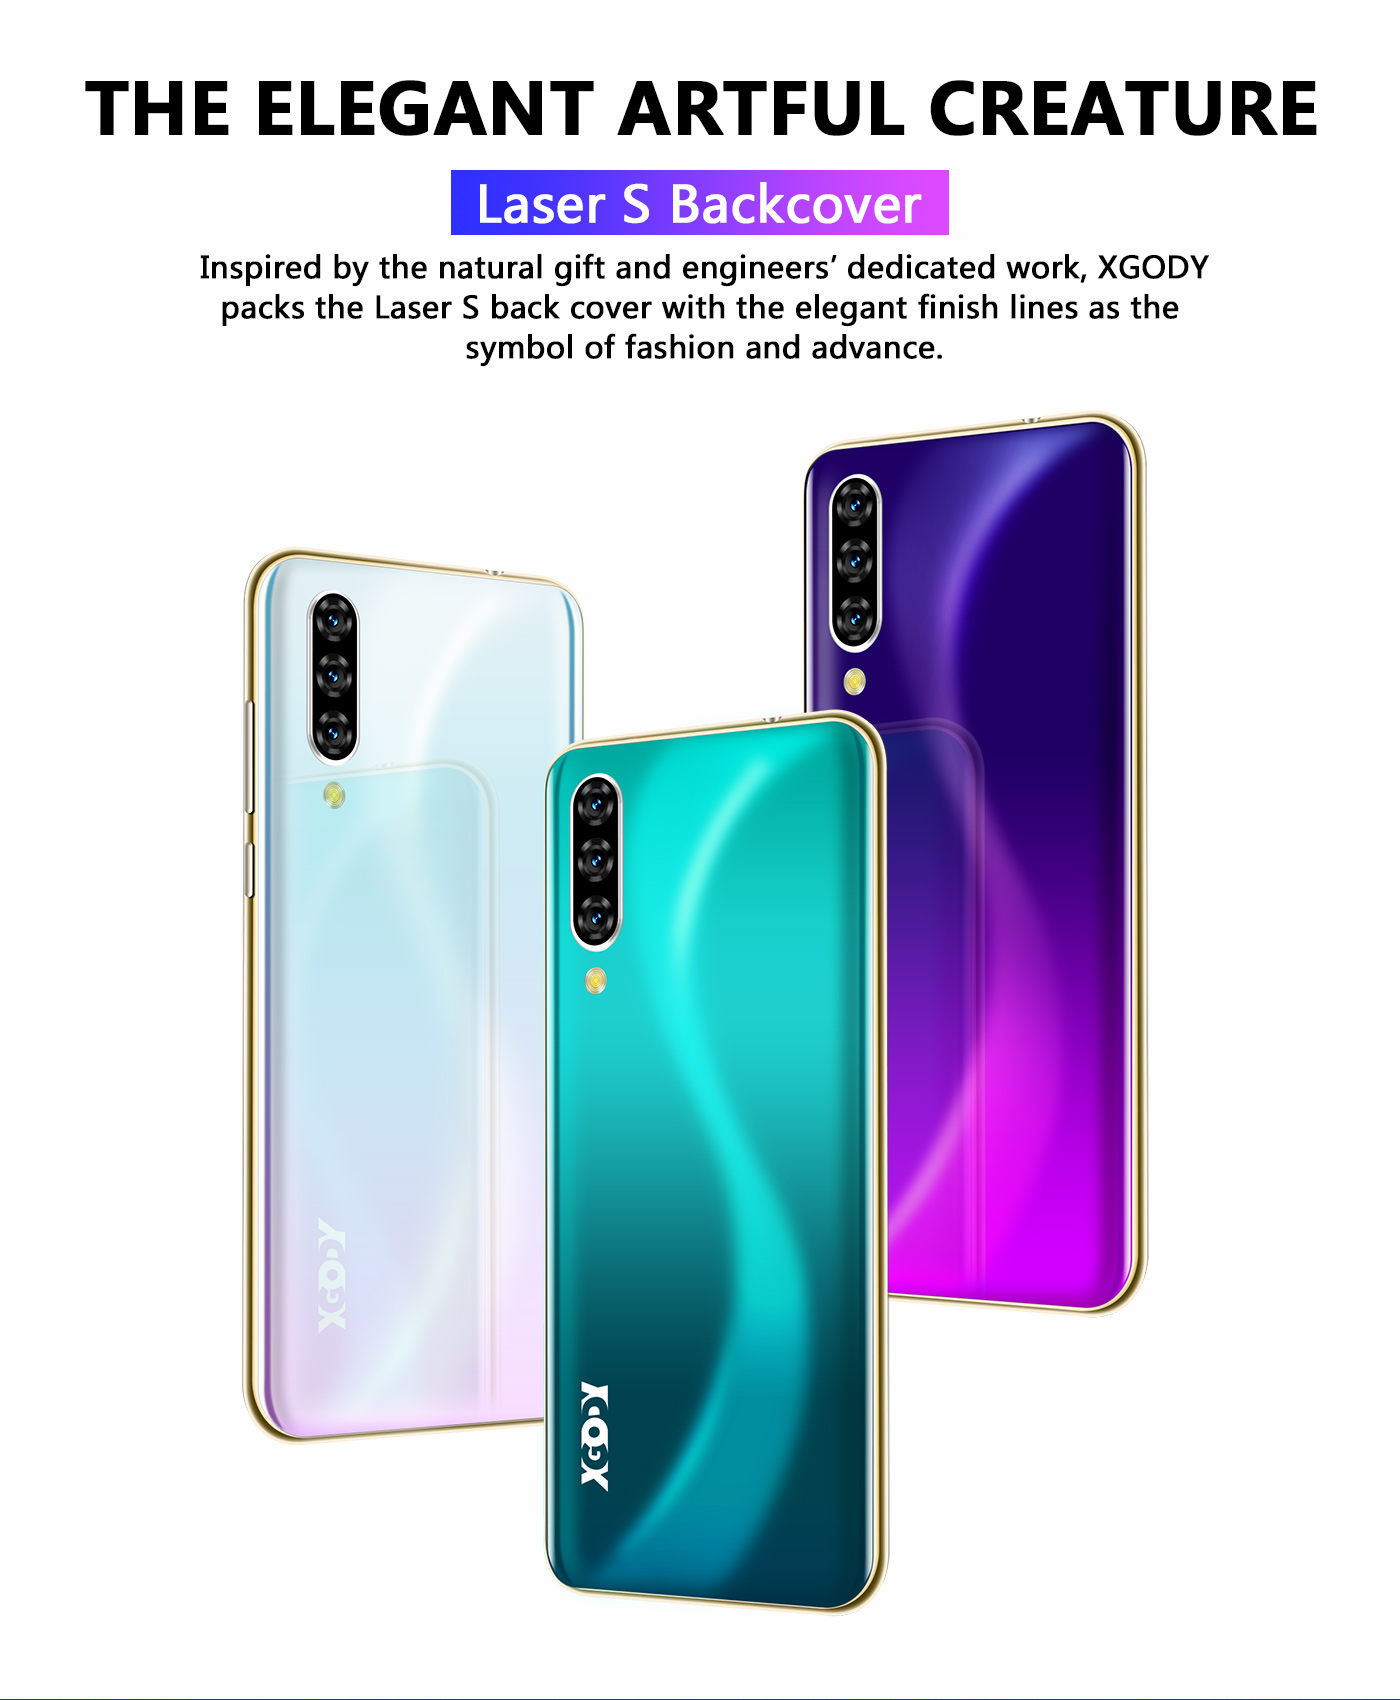 GSM 16GB New Unlocked Cell Phone Android 9.0 Smartphone Dual SIM Quad Core Cheap